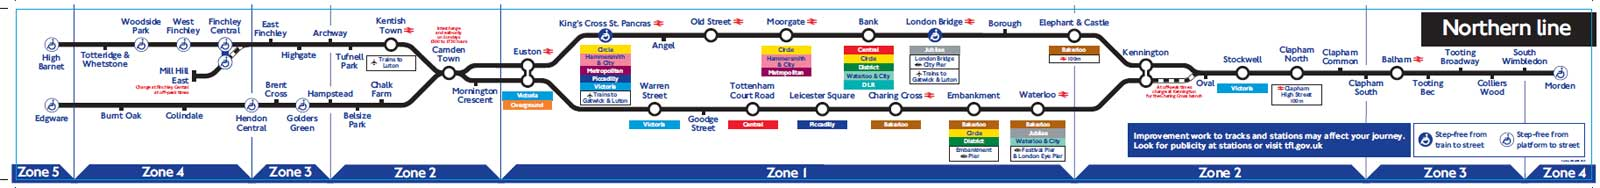 Why Dont The Individual Line Maps Inside The Underground Trains - Northern line map london